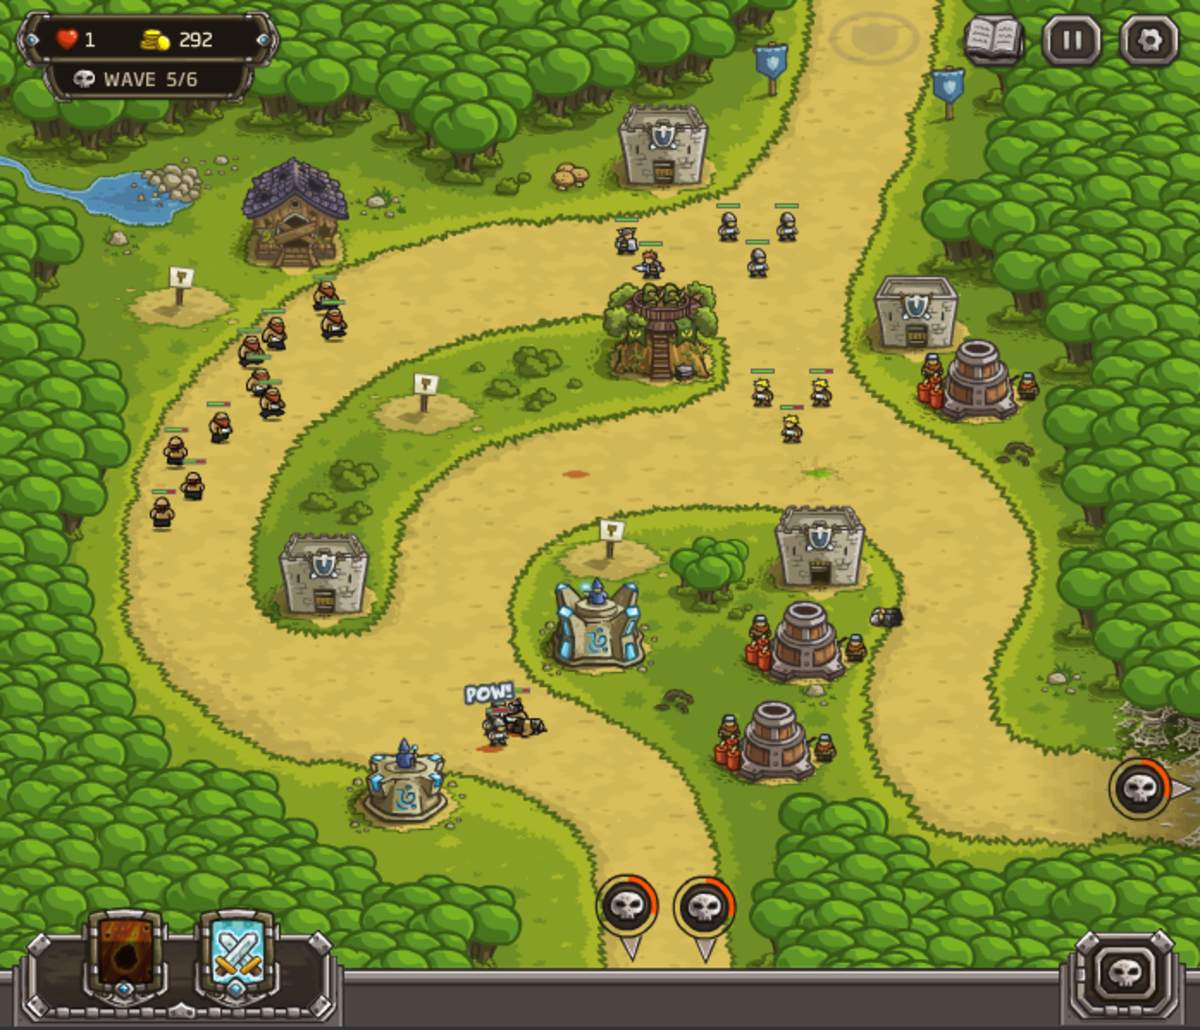 Kingdom Rush is copyrighted by Armor Games. All images used for educational purposes only.